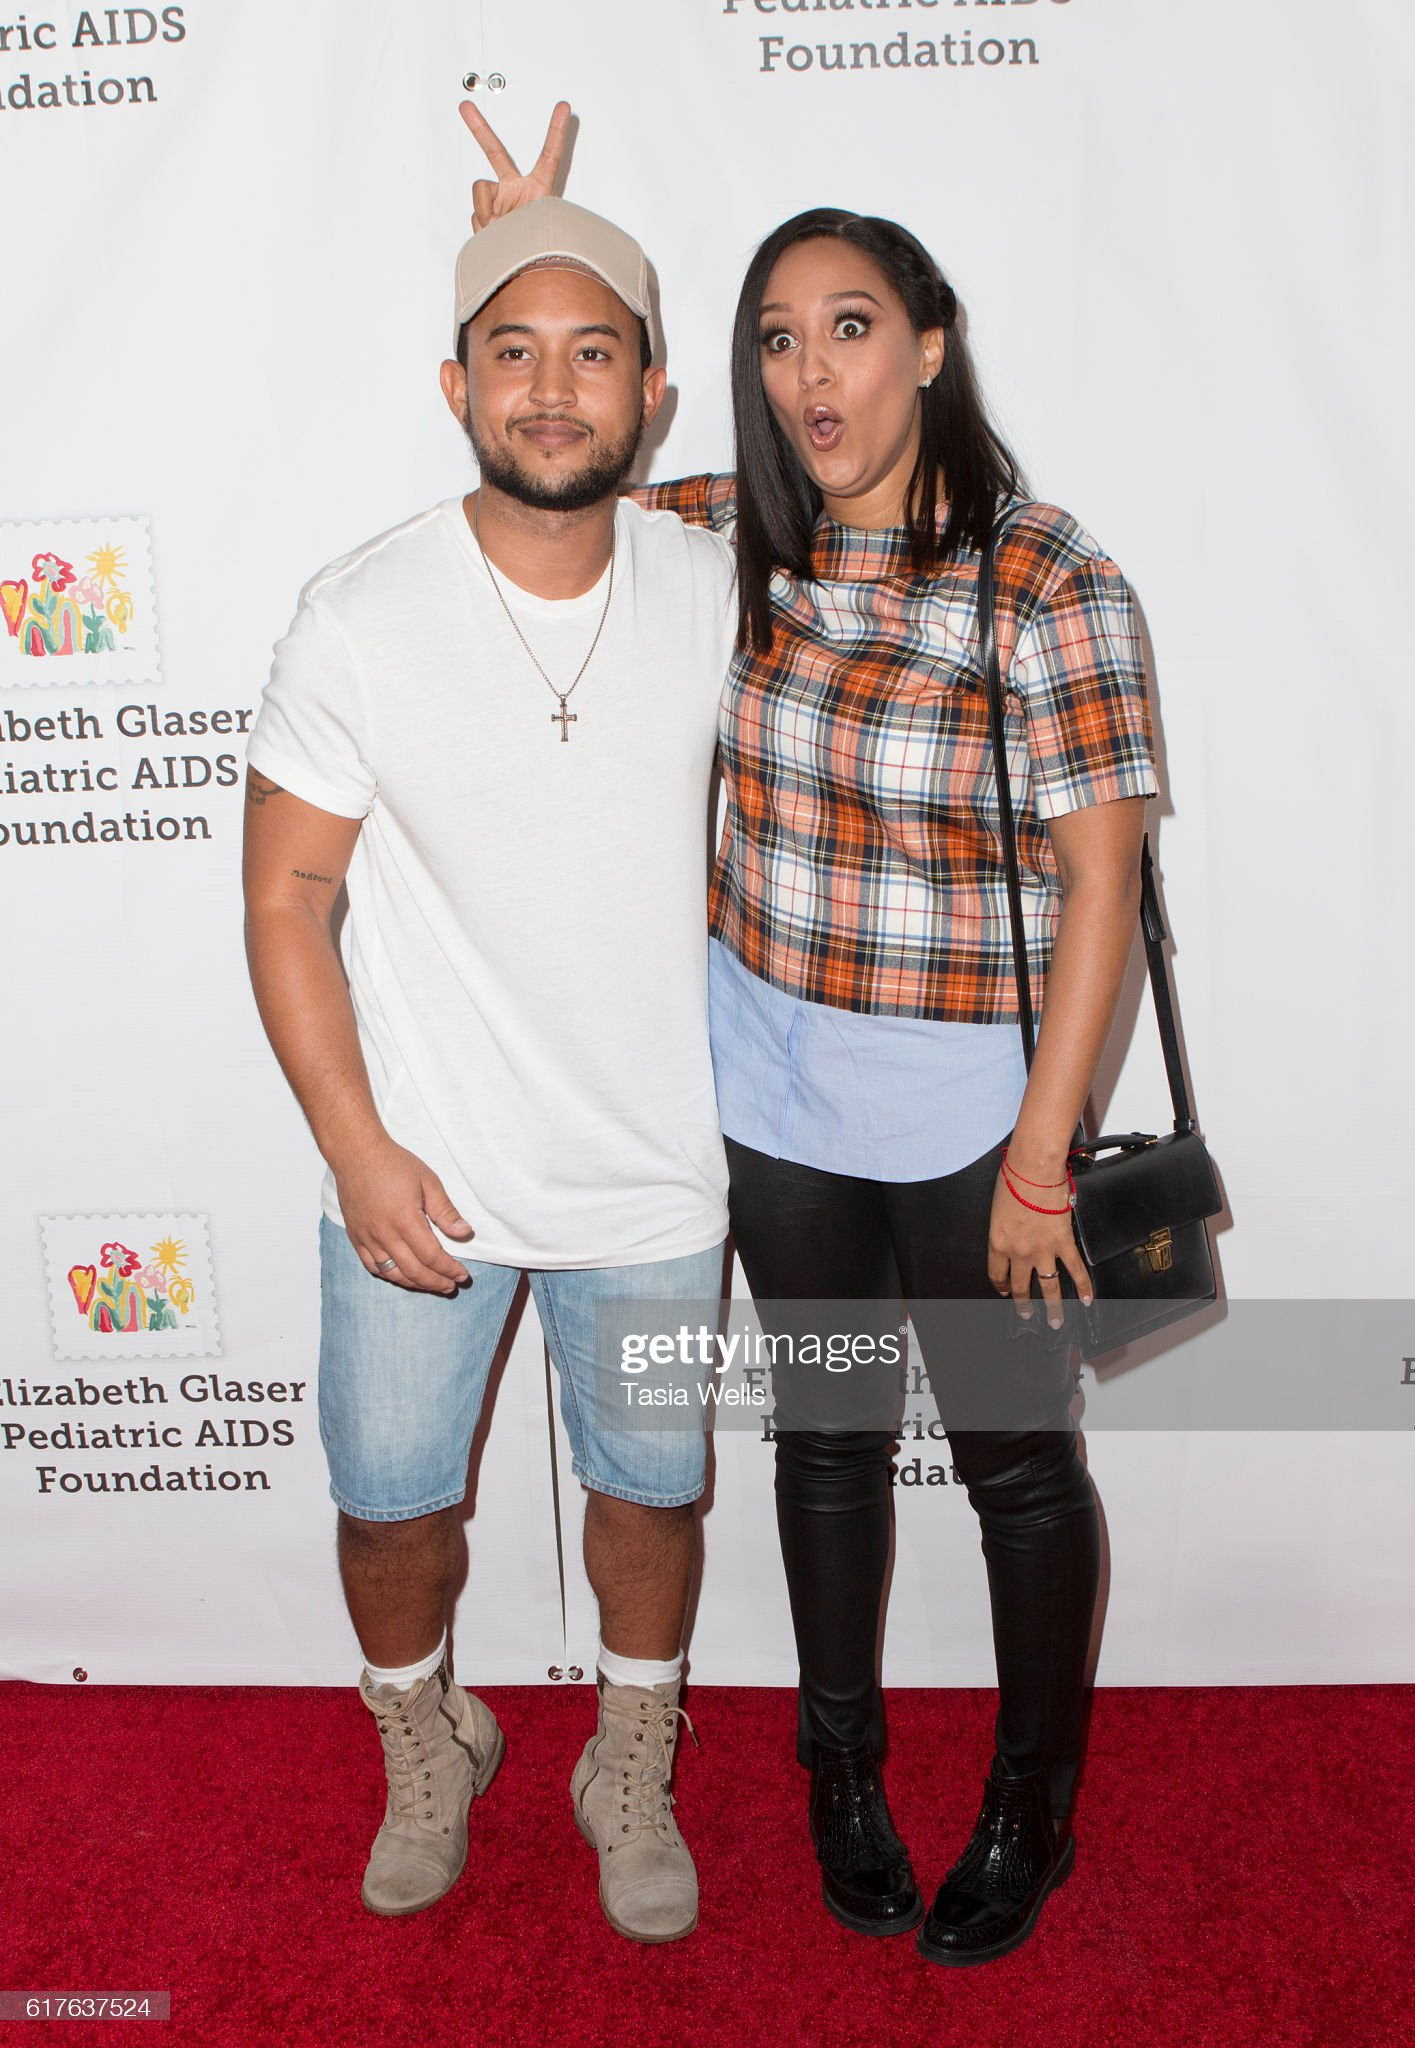 ¿Cuánto mide Tamera Mowry? - Altura - Real height Actor-tahj-mowry-and-actress-tia-mowry-attend-elizabeth-glaser-aids-picture-id617637524?s=2048x2048